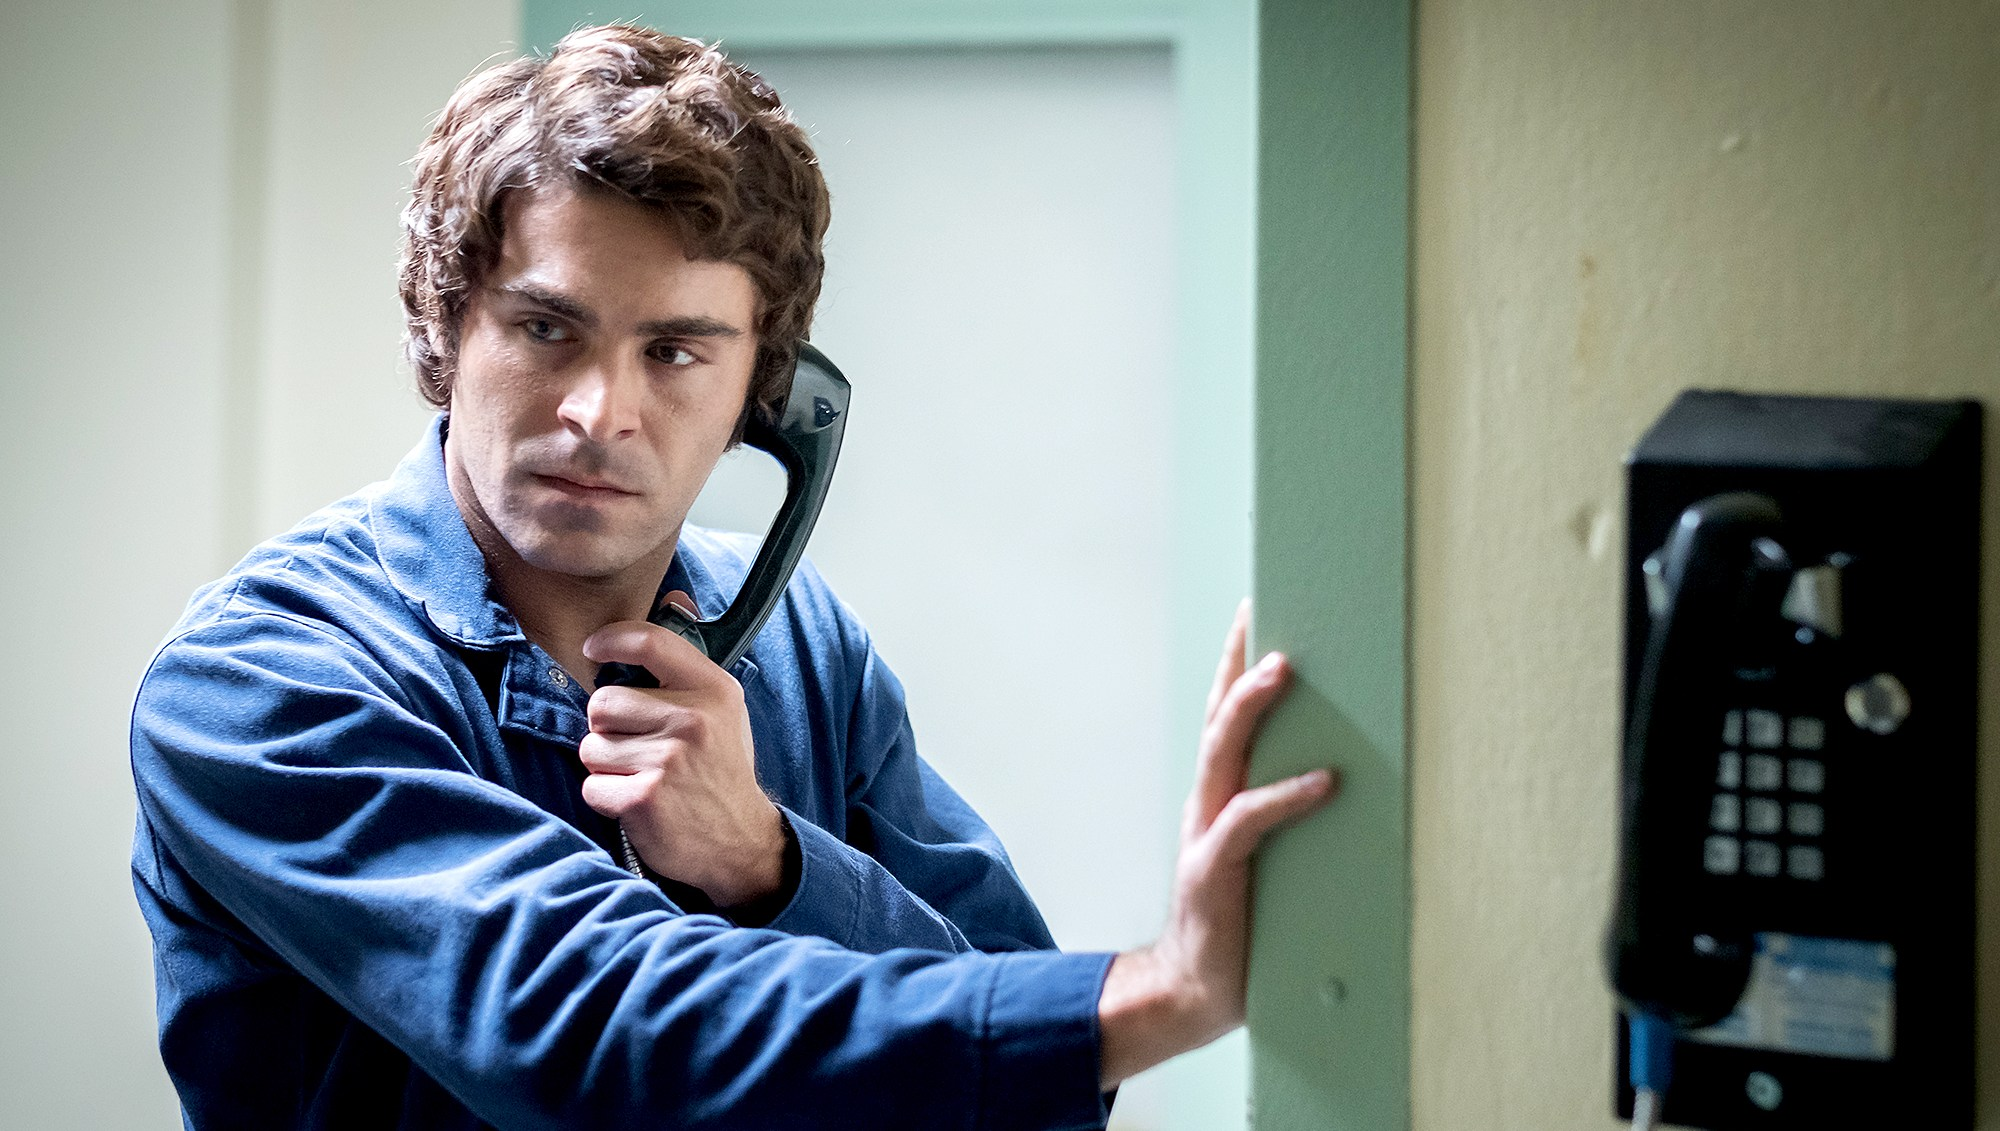 Zac-Efron-Extremely-Wicked,-Shockingly-Evil-and-Vile